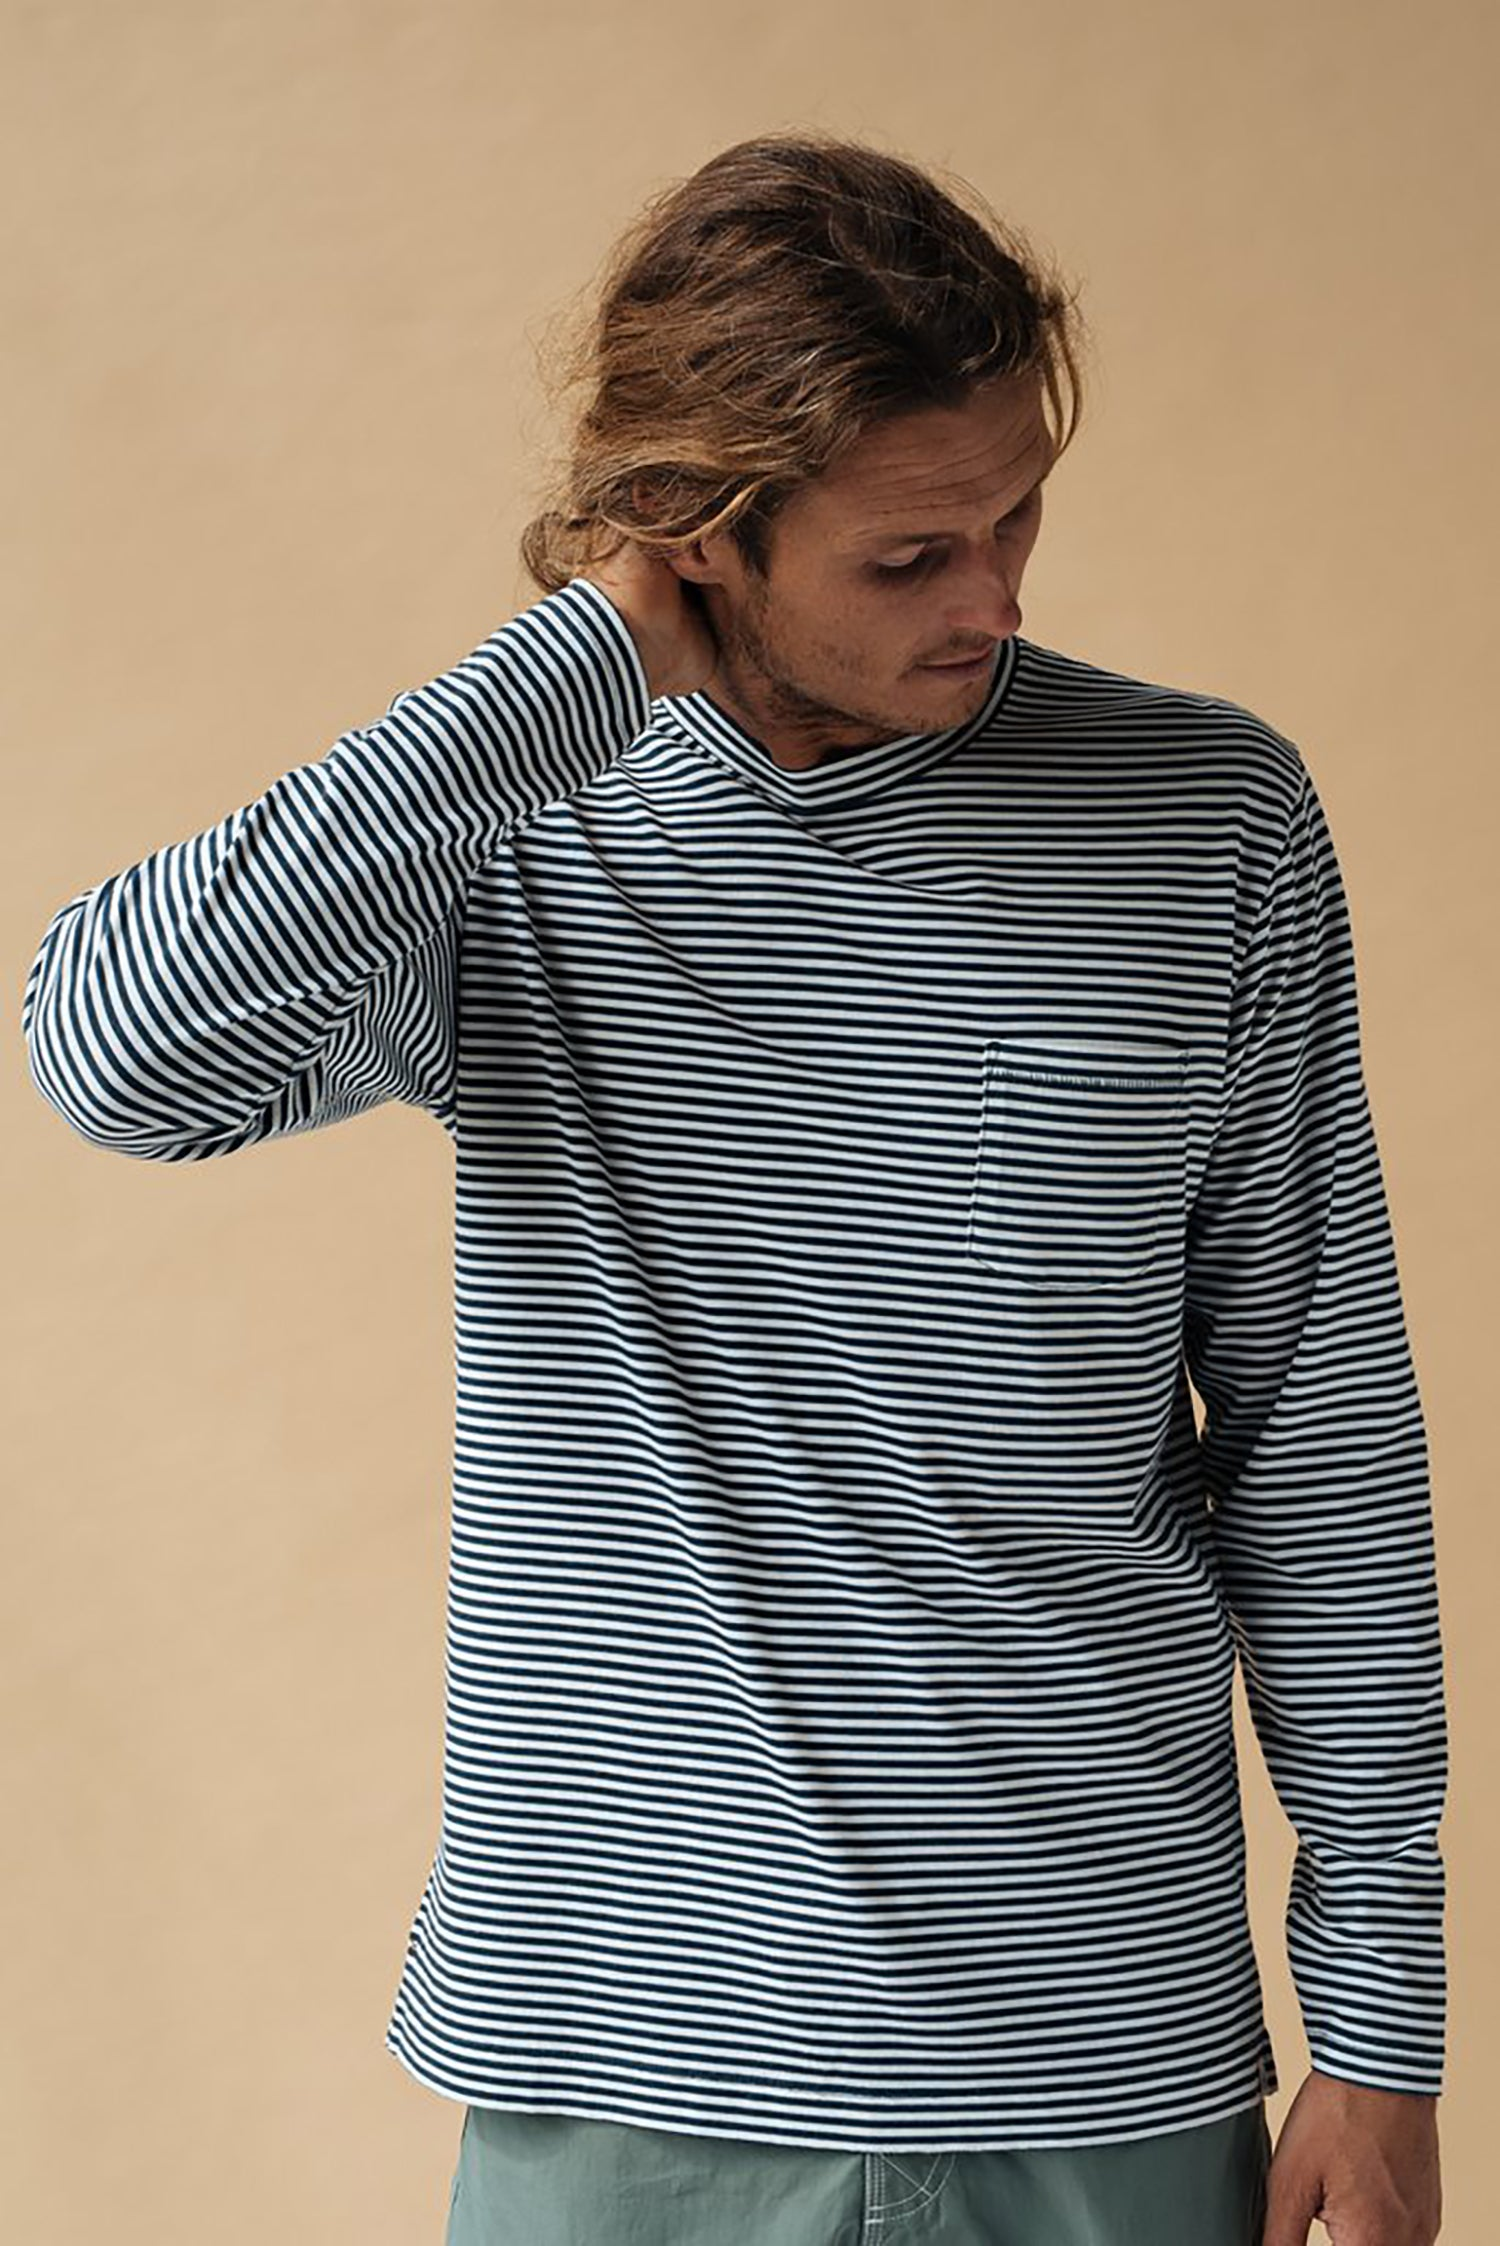 Sand Washed LS Stripe Tee - Atlantic